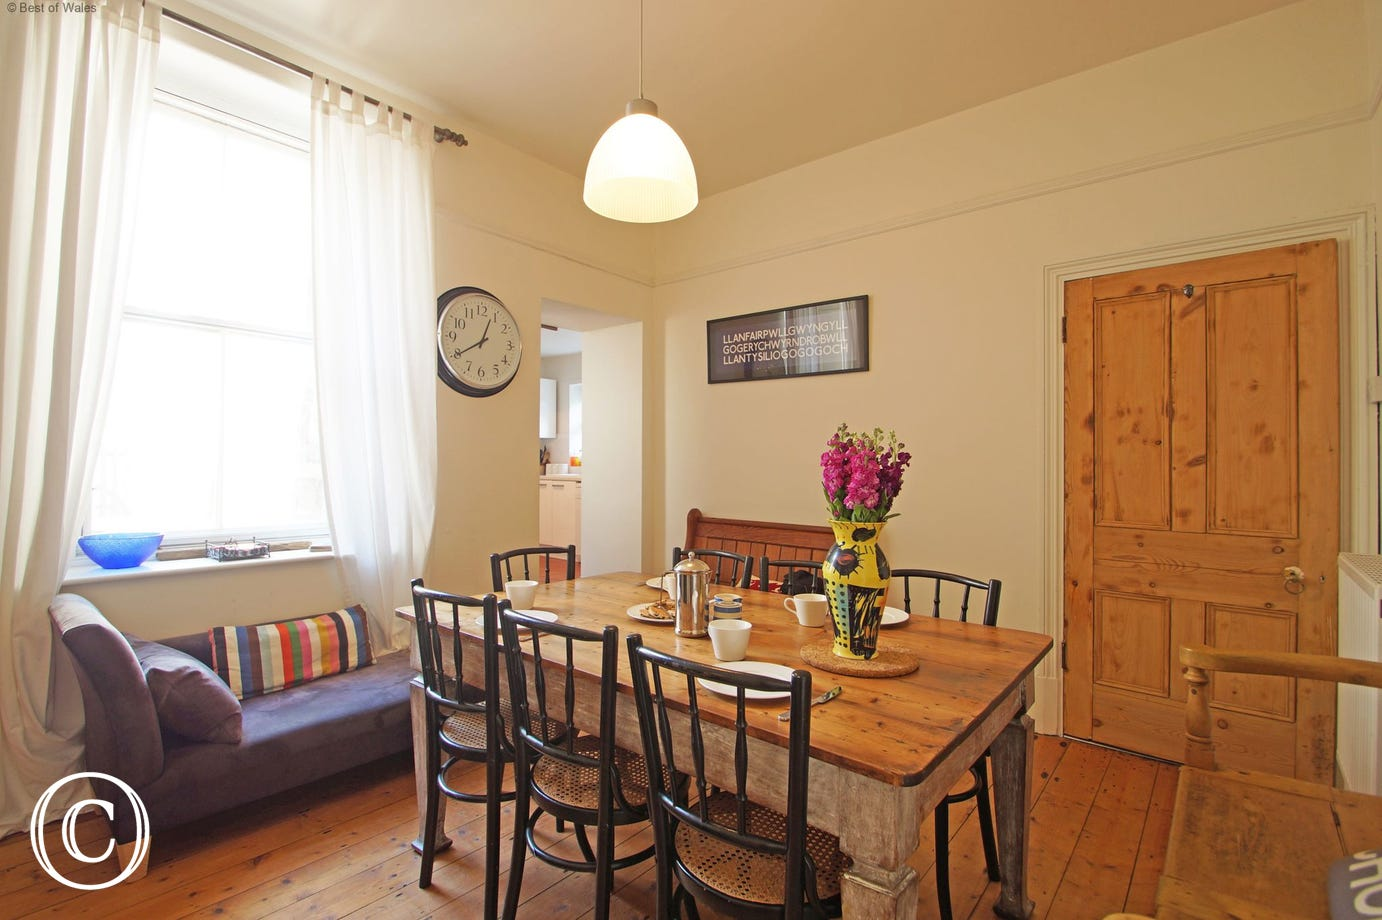 Dining room at this large self catering house in West Wales